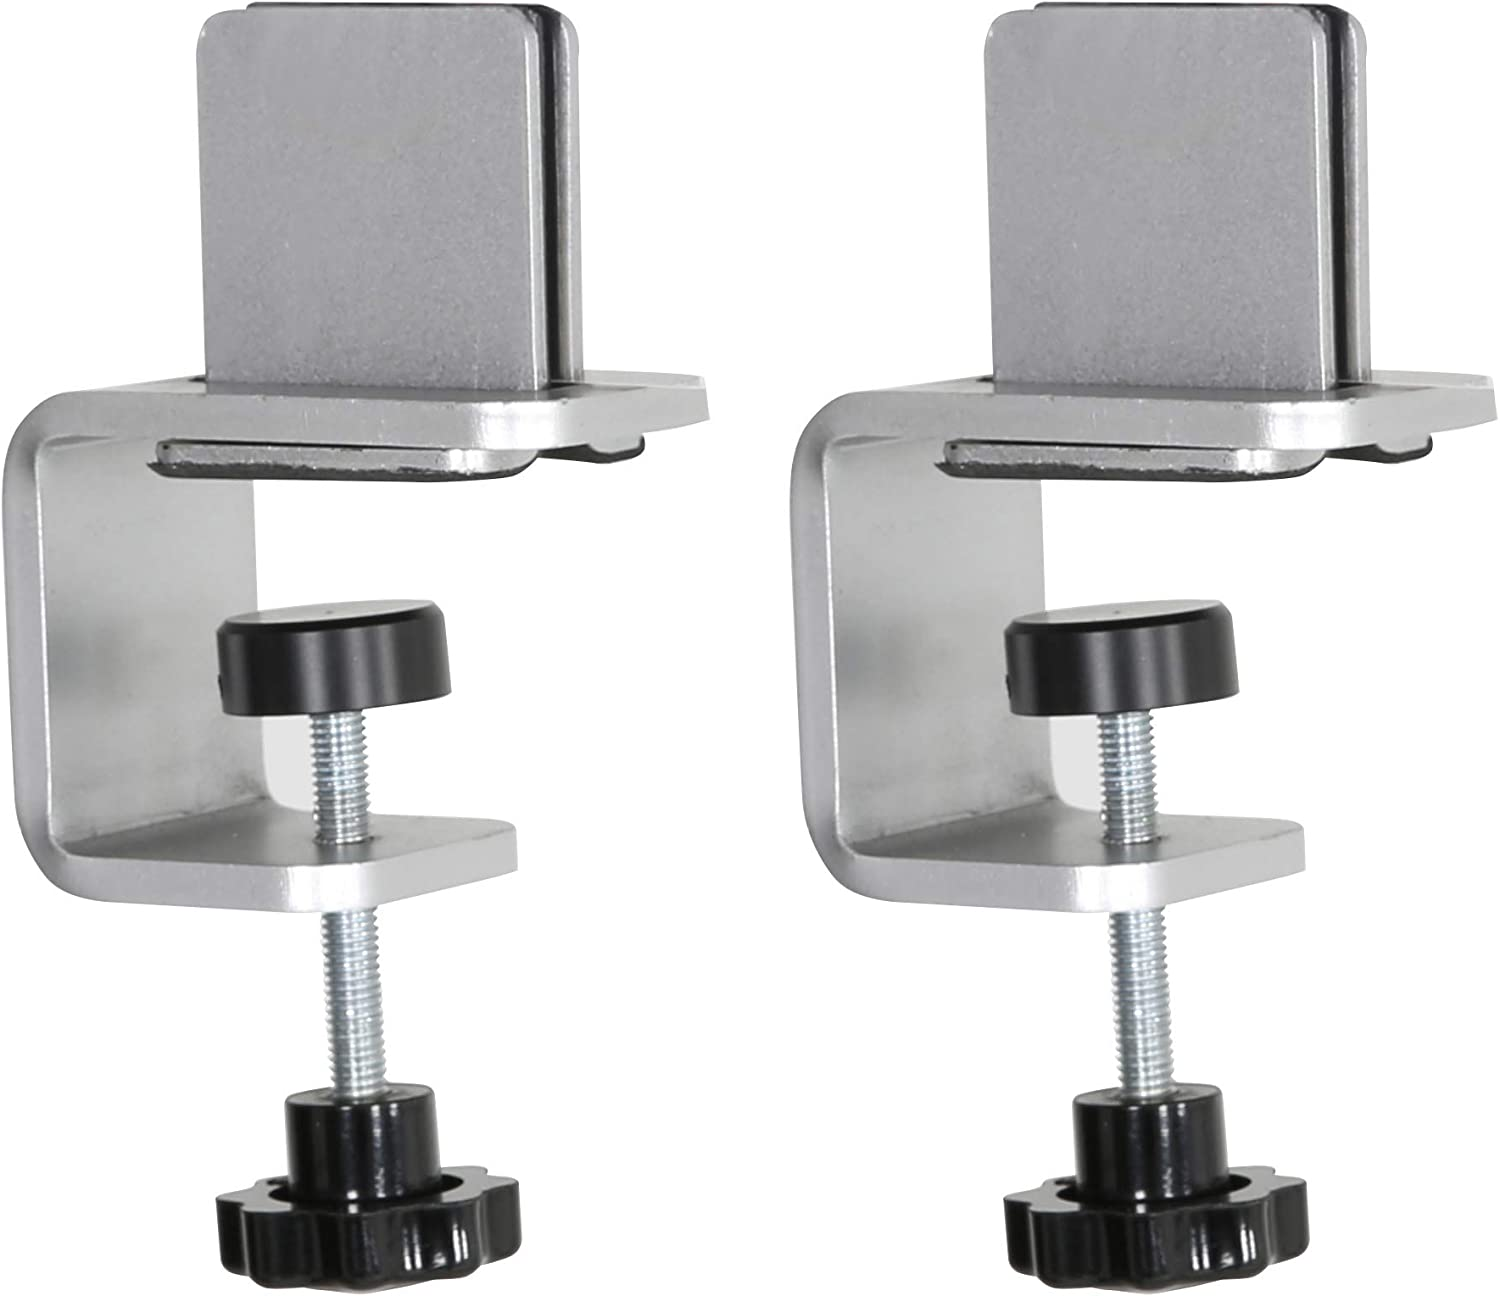 M&T Displays Mid Section Clamp Kit, C-Clamp for Table Panel Separator, Desktop Mount Holder Stand (2 pack)